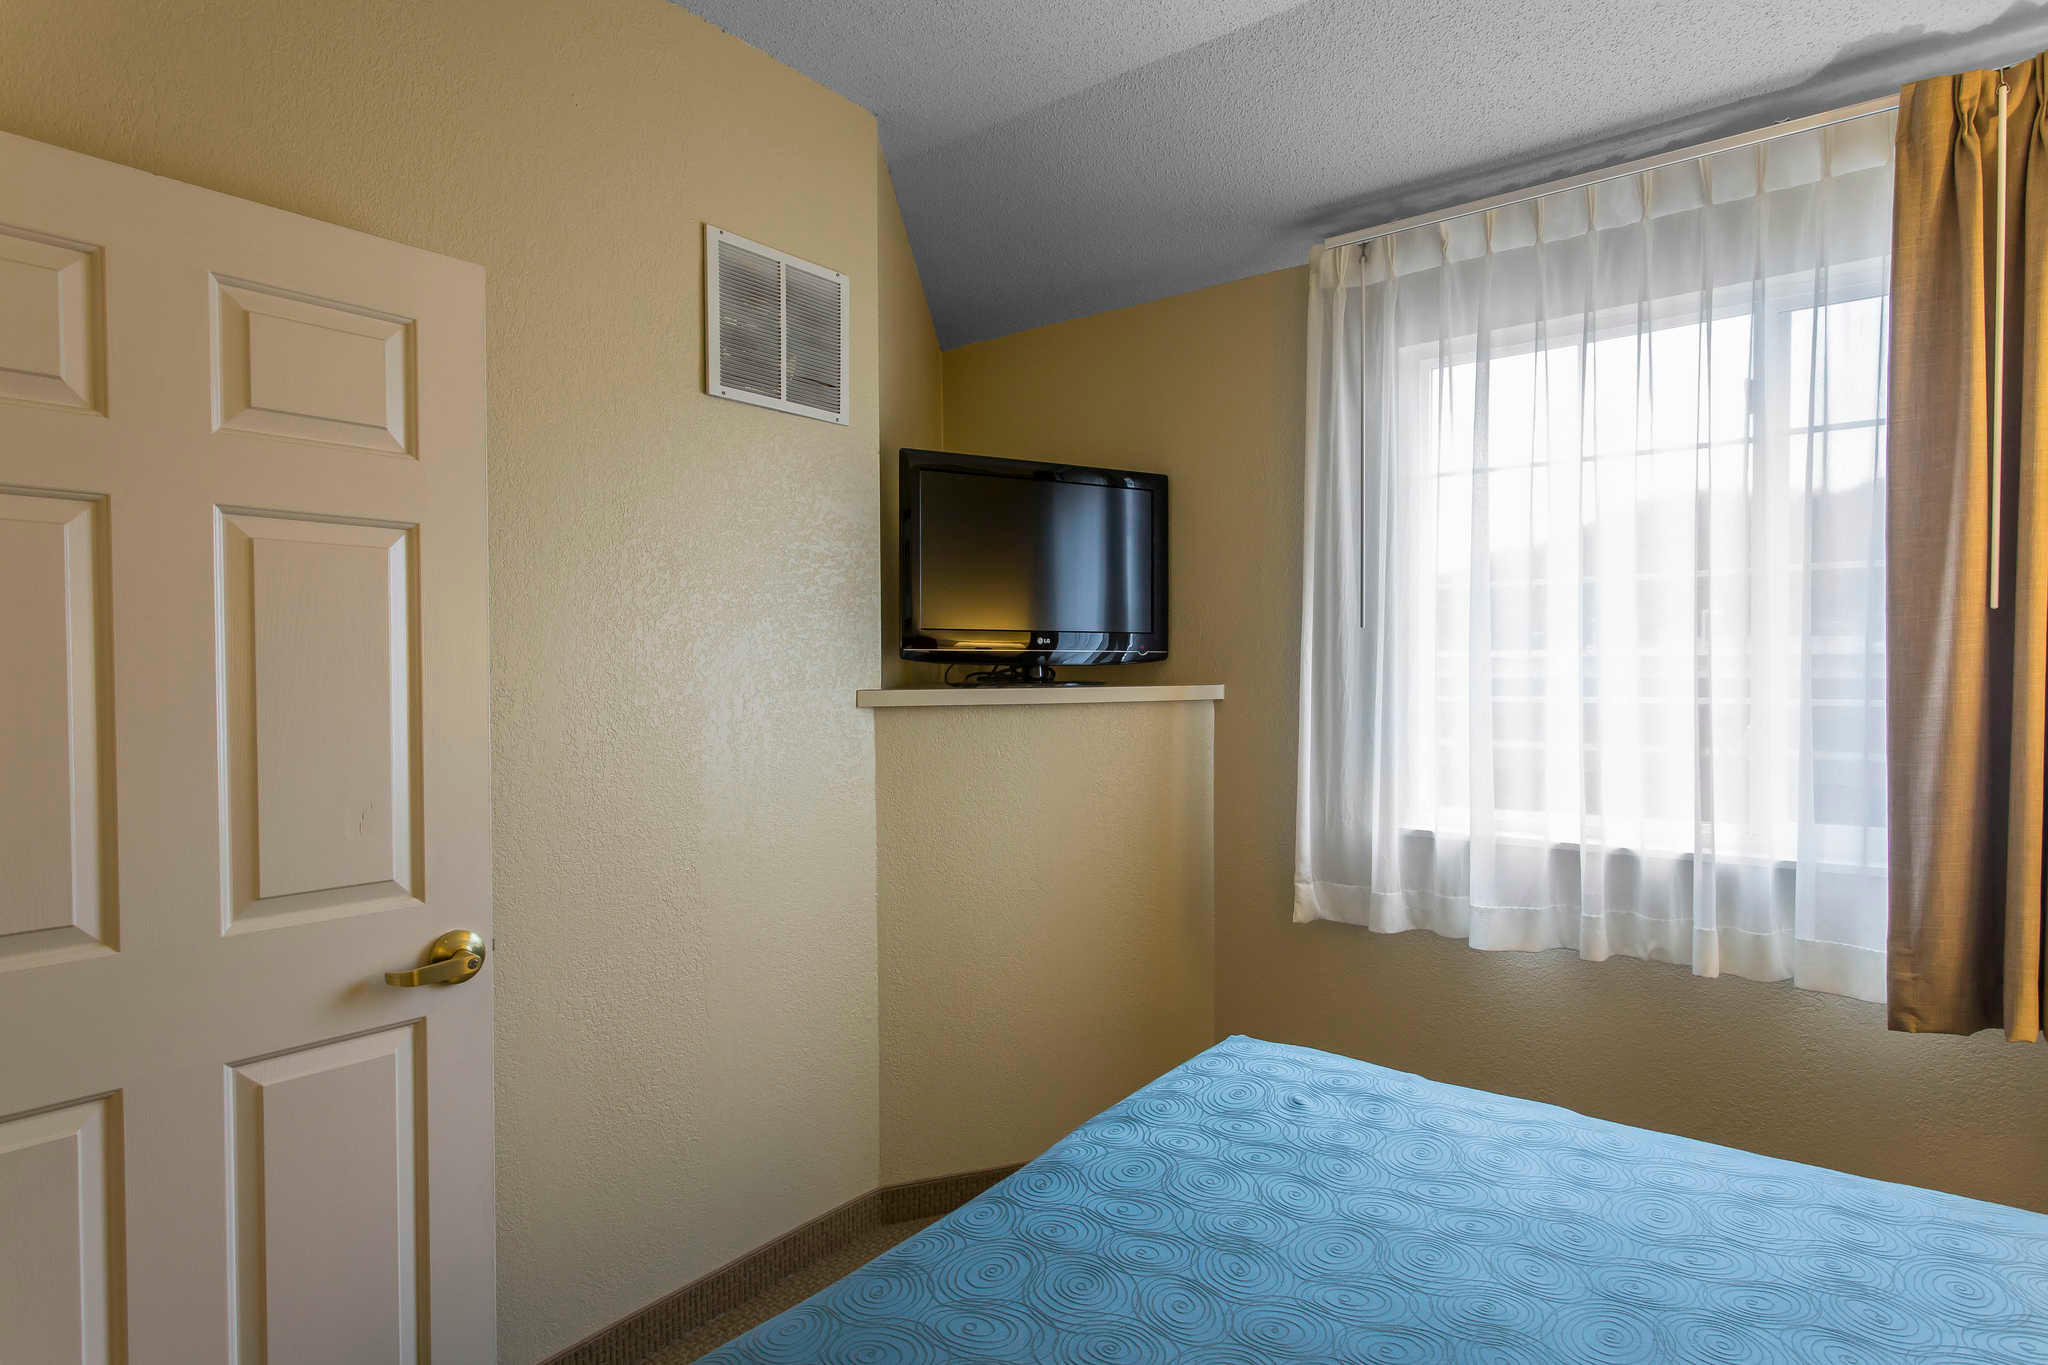 MainStay Suites image 29